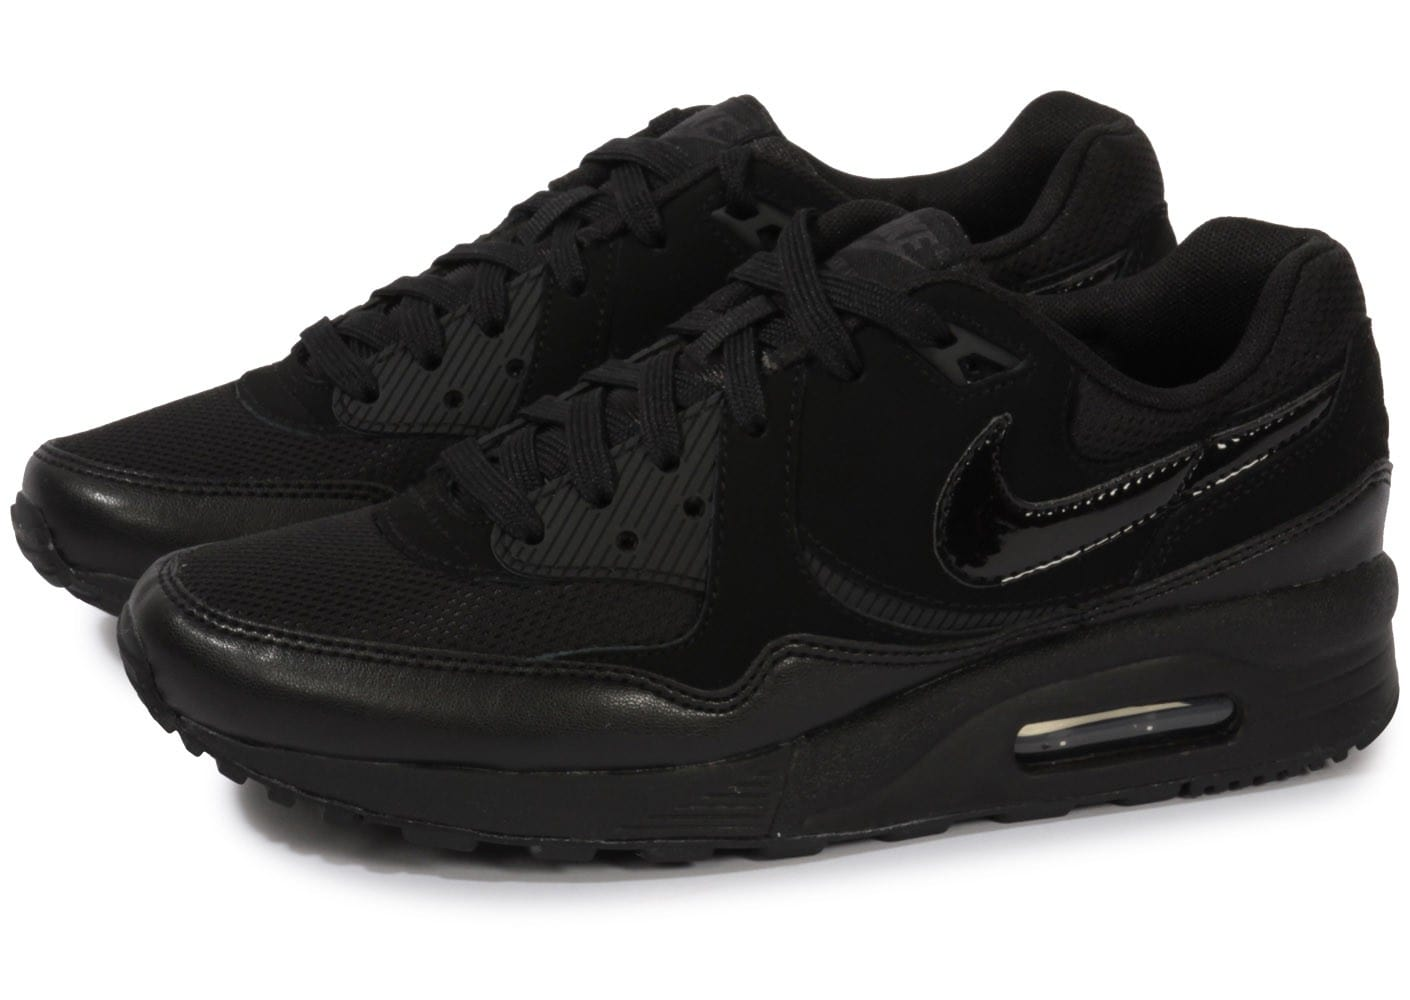 nike air max light noire chaussures chaussures chausport. Black Bedroom Furniture Sets. Home Design Ideas